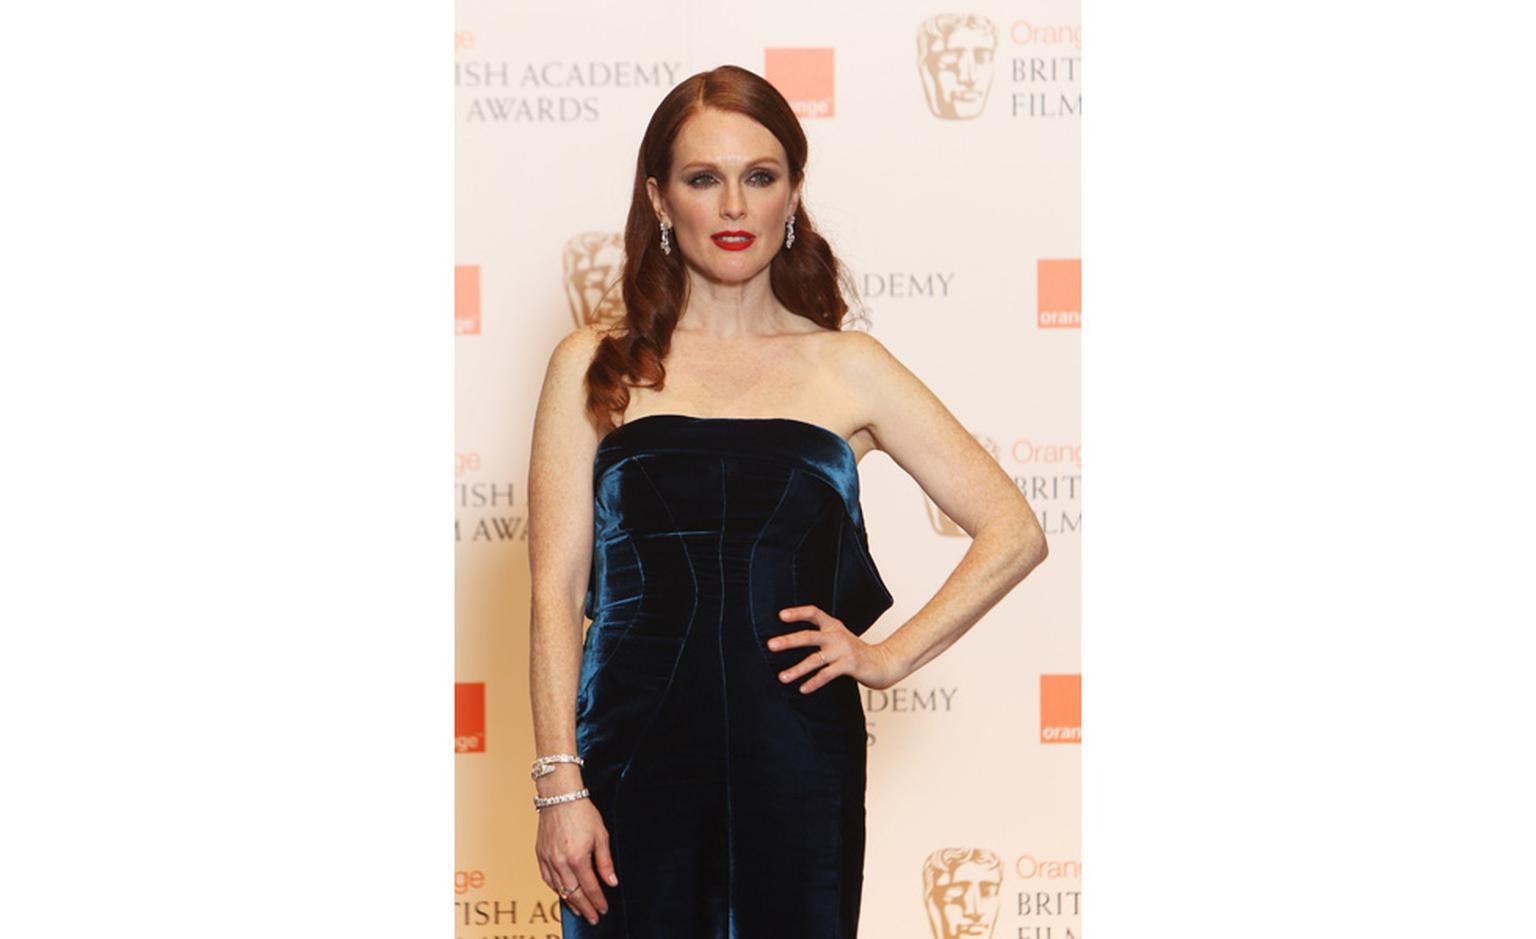 Julianne Moore at BAFTAs 2011 wearing Bulgari diamond jewels